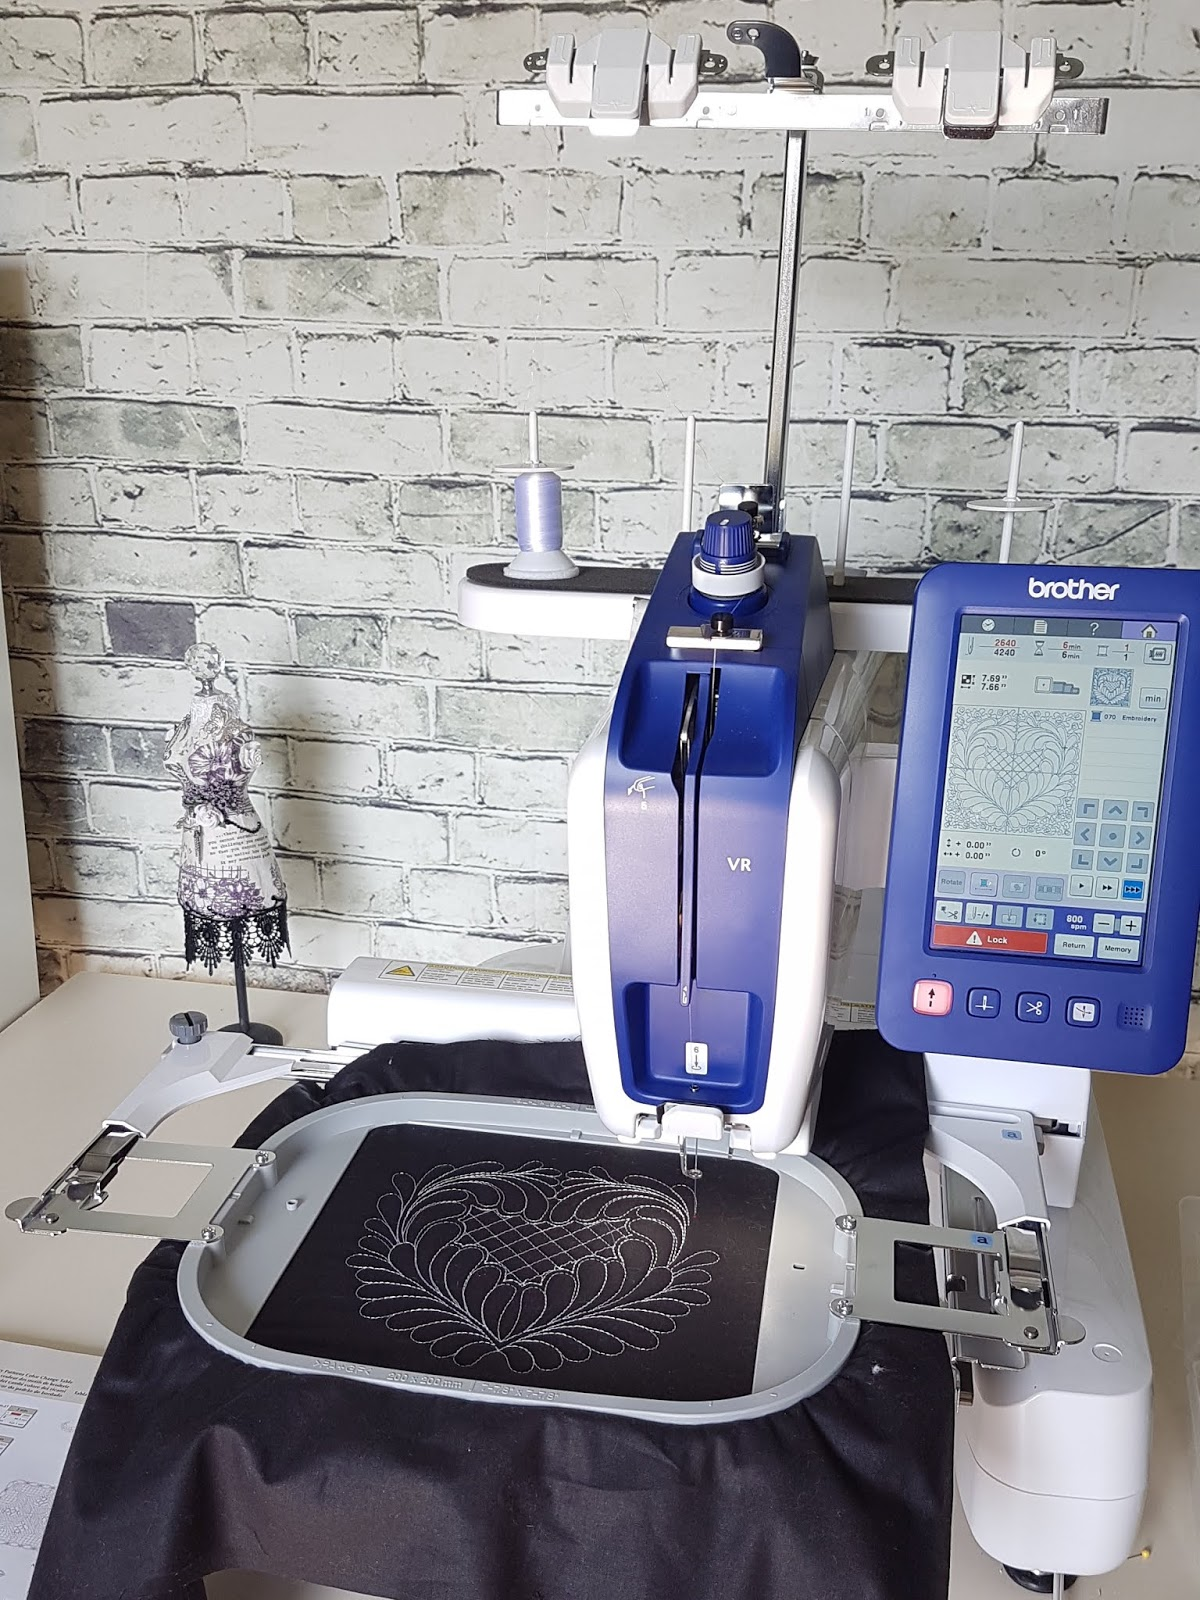 Brother VR Embroidery Sewing Machine Sewing Home & Kitchen gerakl24.ru